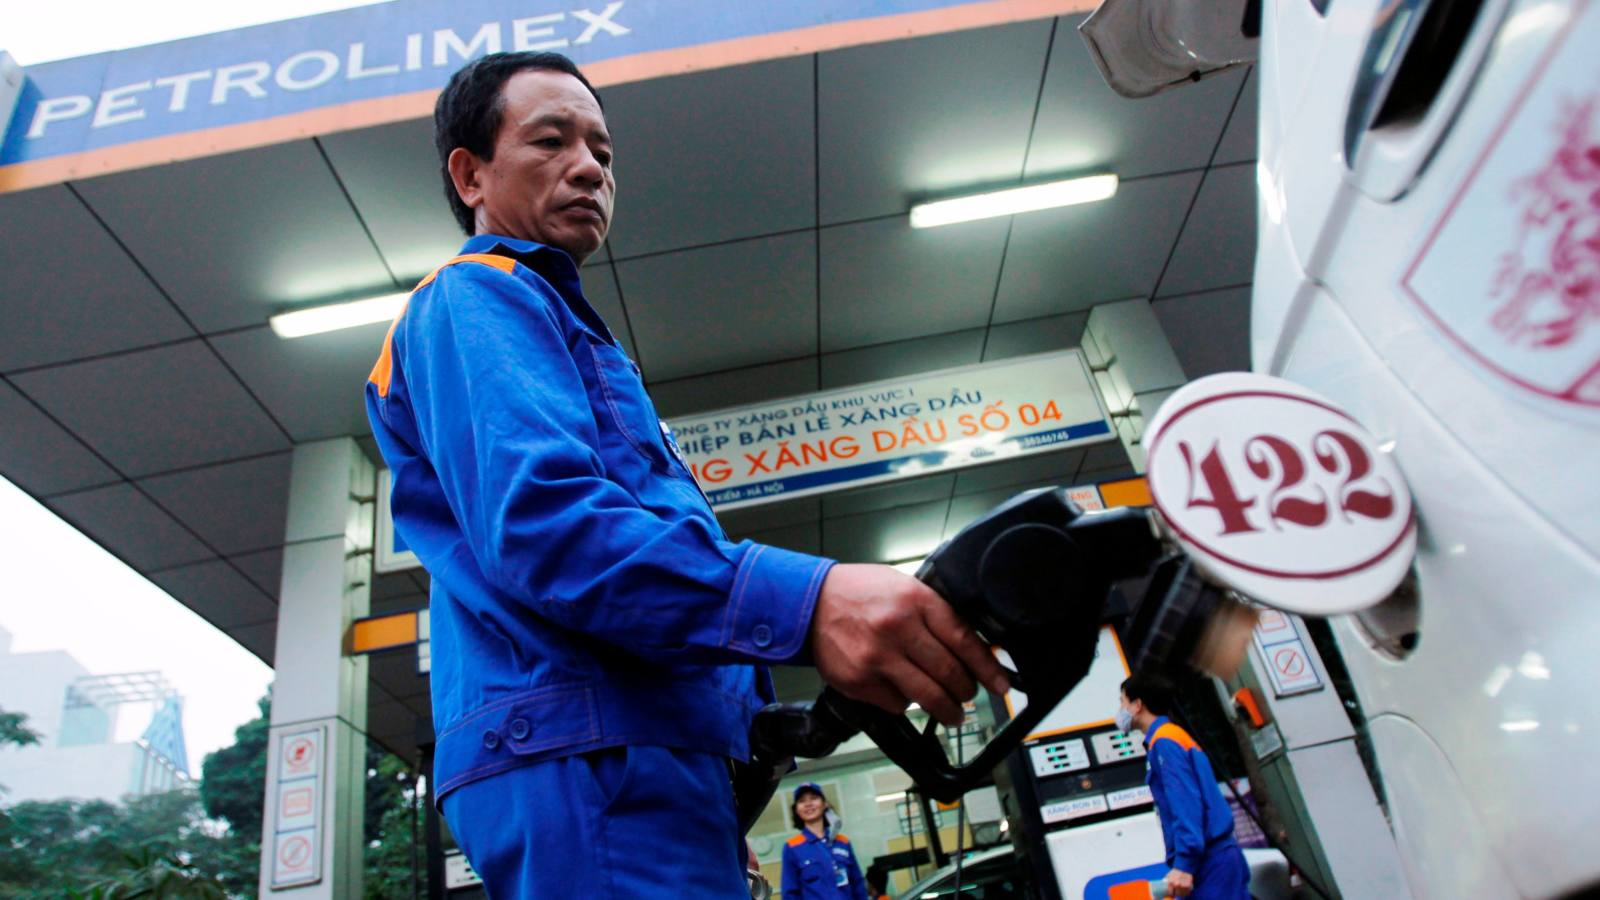 A man pumps gasoline at a gas station in Hanoi, run by Vietnam's top fuel importer and distributor Petrolimex.